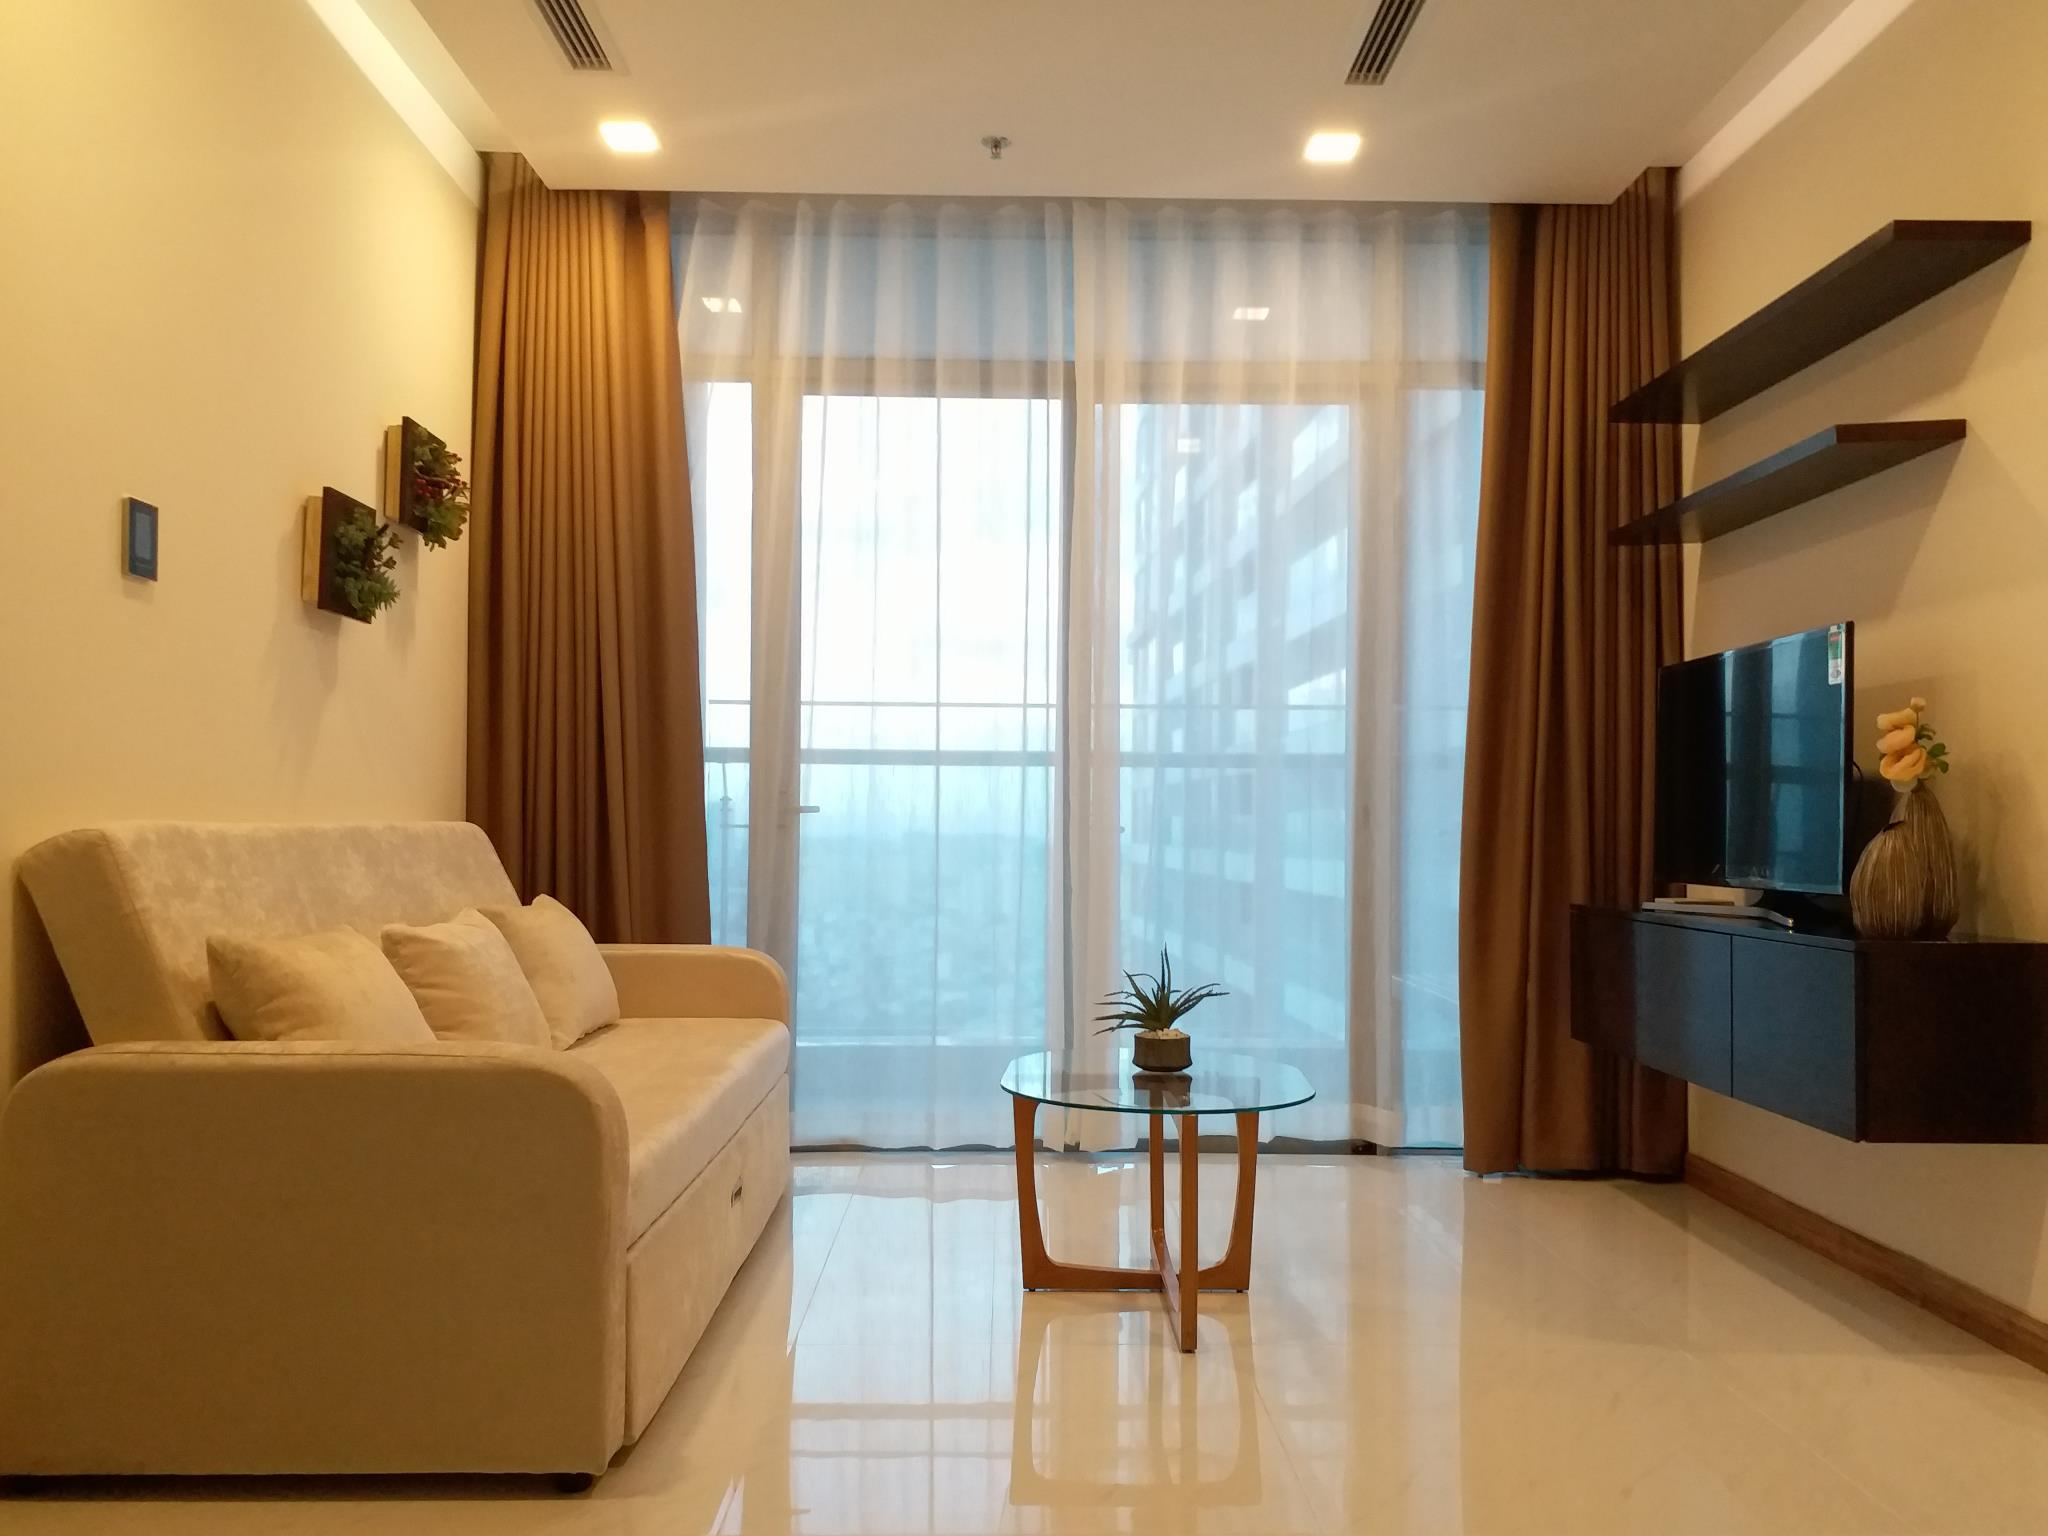 5 STAR 2BR Nearby RIVER And PARK Warmly Welcome HOME